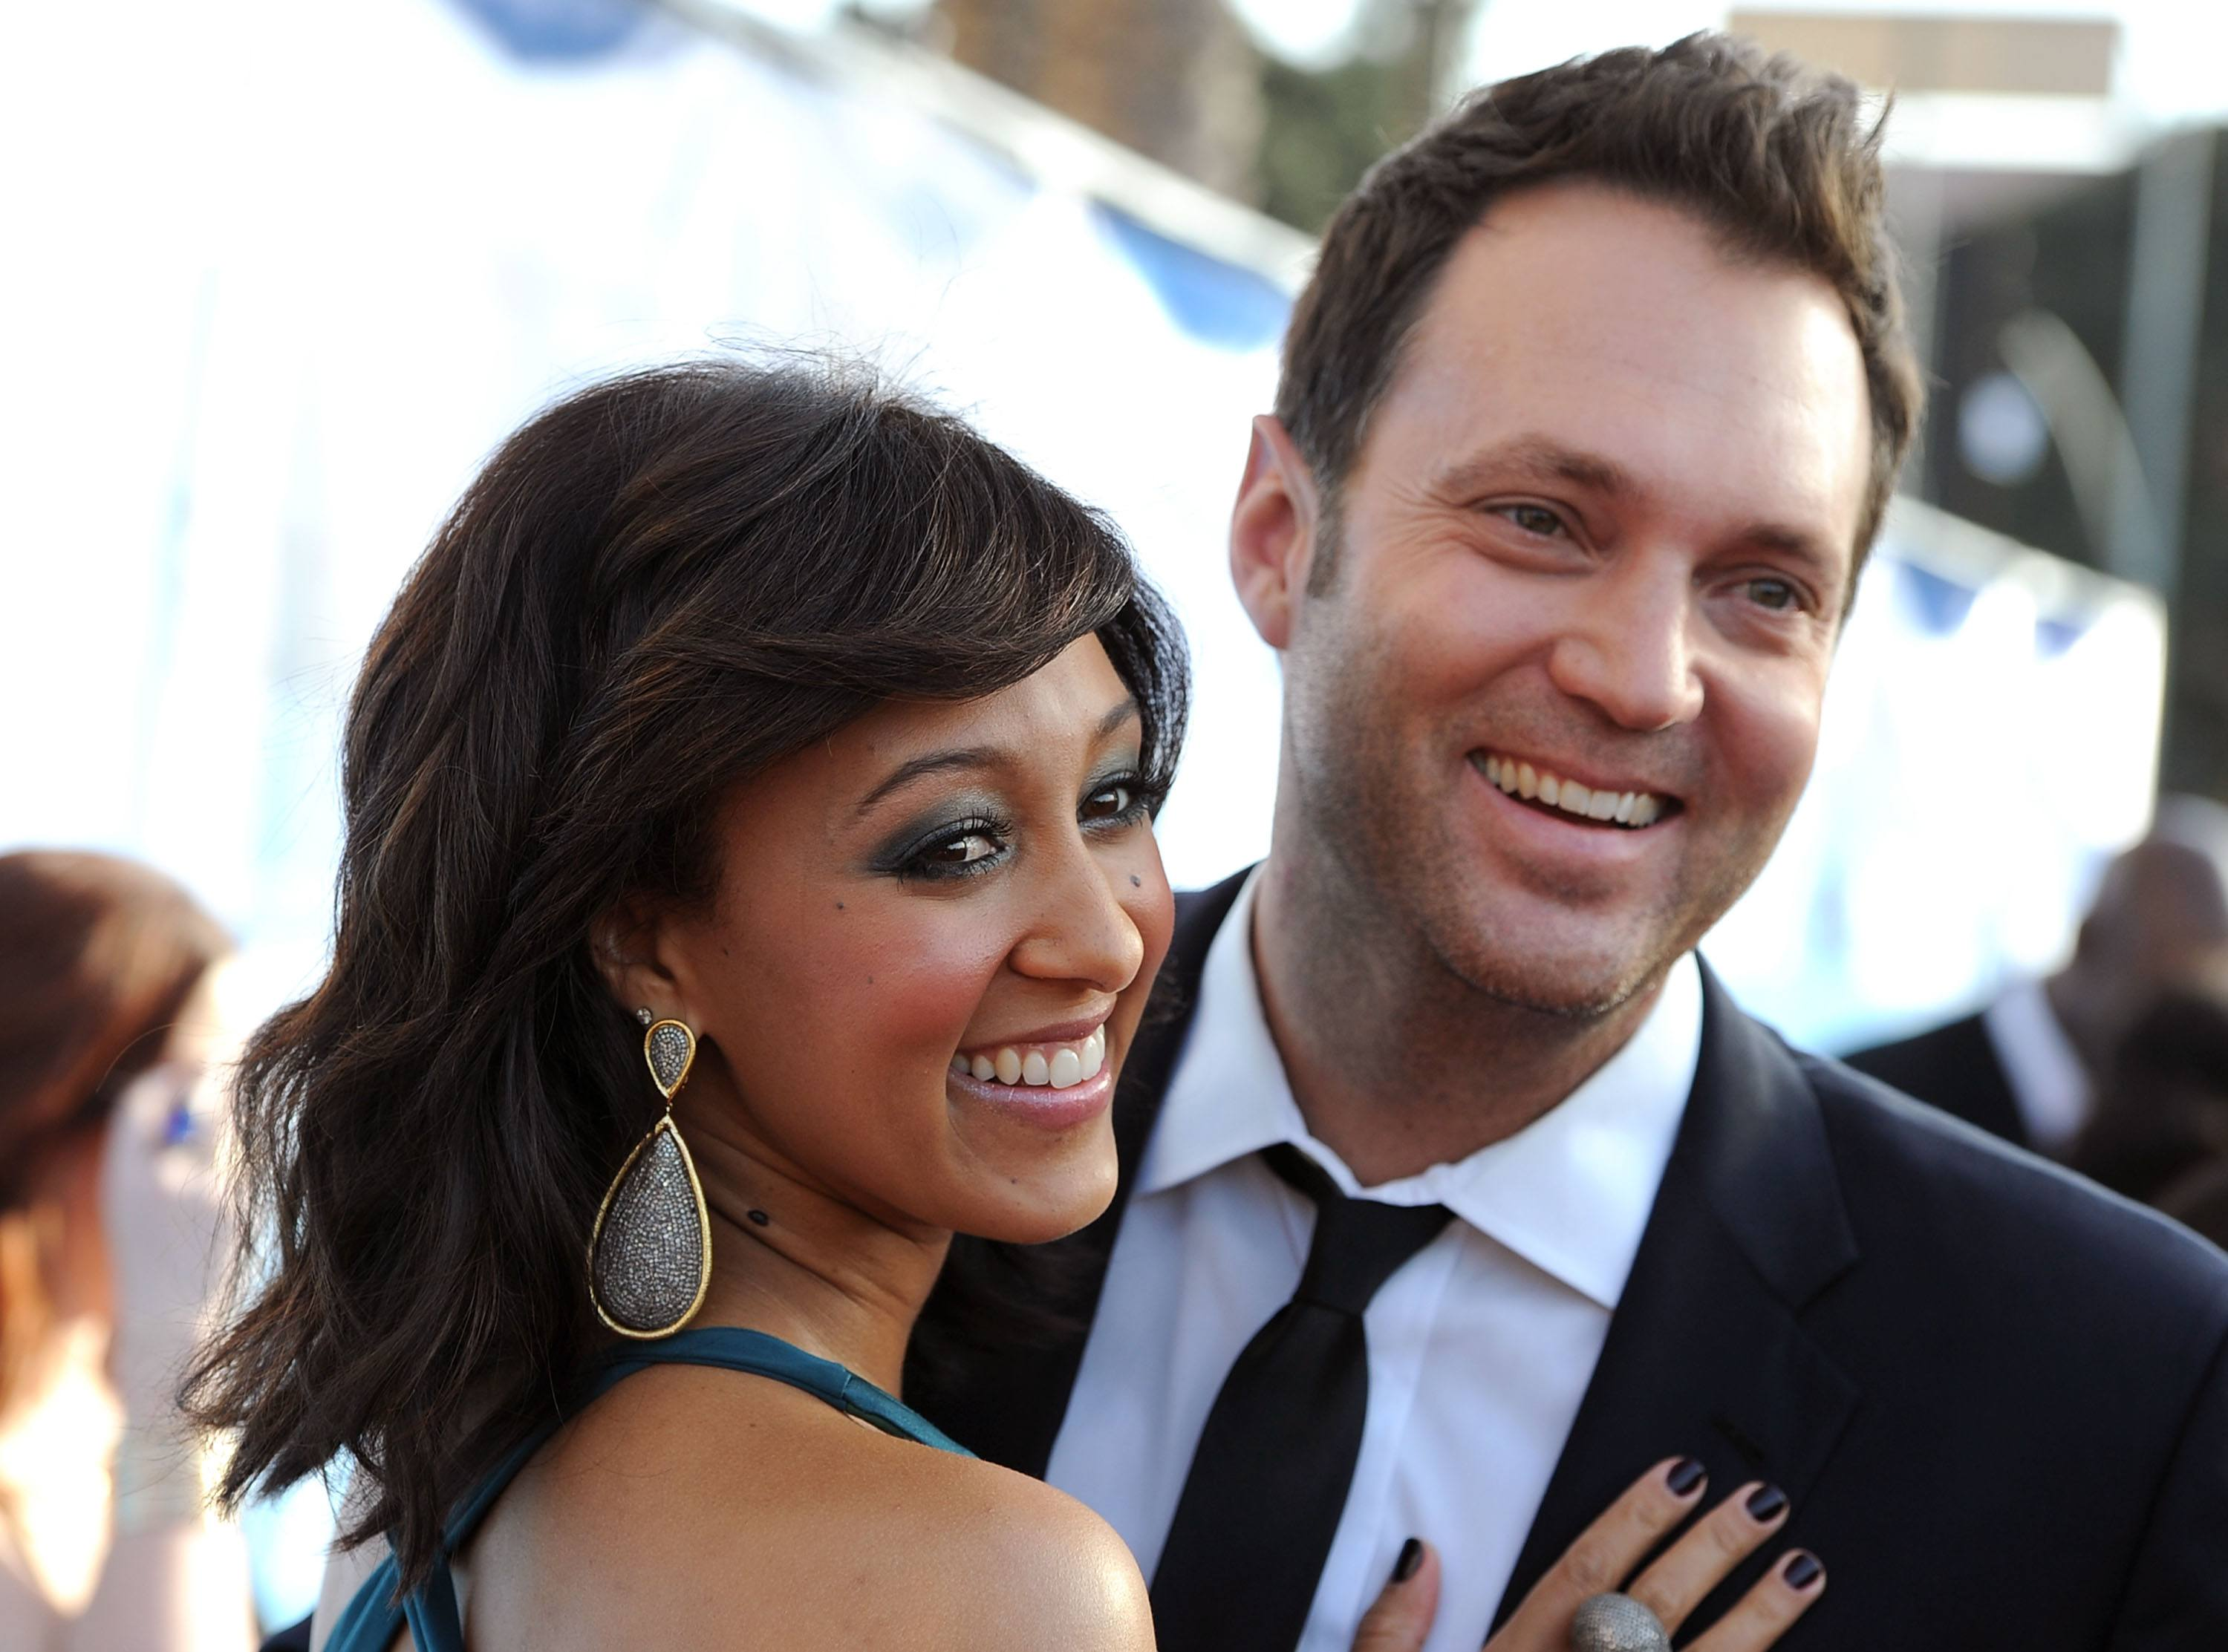 Actress Tamera Mowry and reporter Adam Housley arrive at the 42nd NAACP Image Awards held at The Shrine Auditorium on March 4, 2011 in Los Angeles, California.